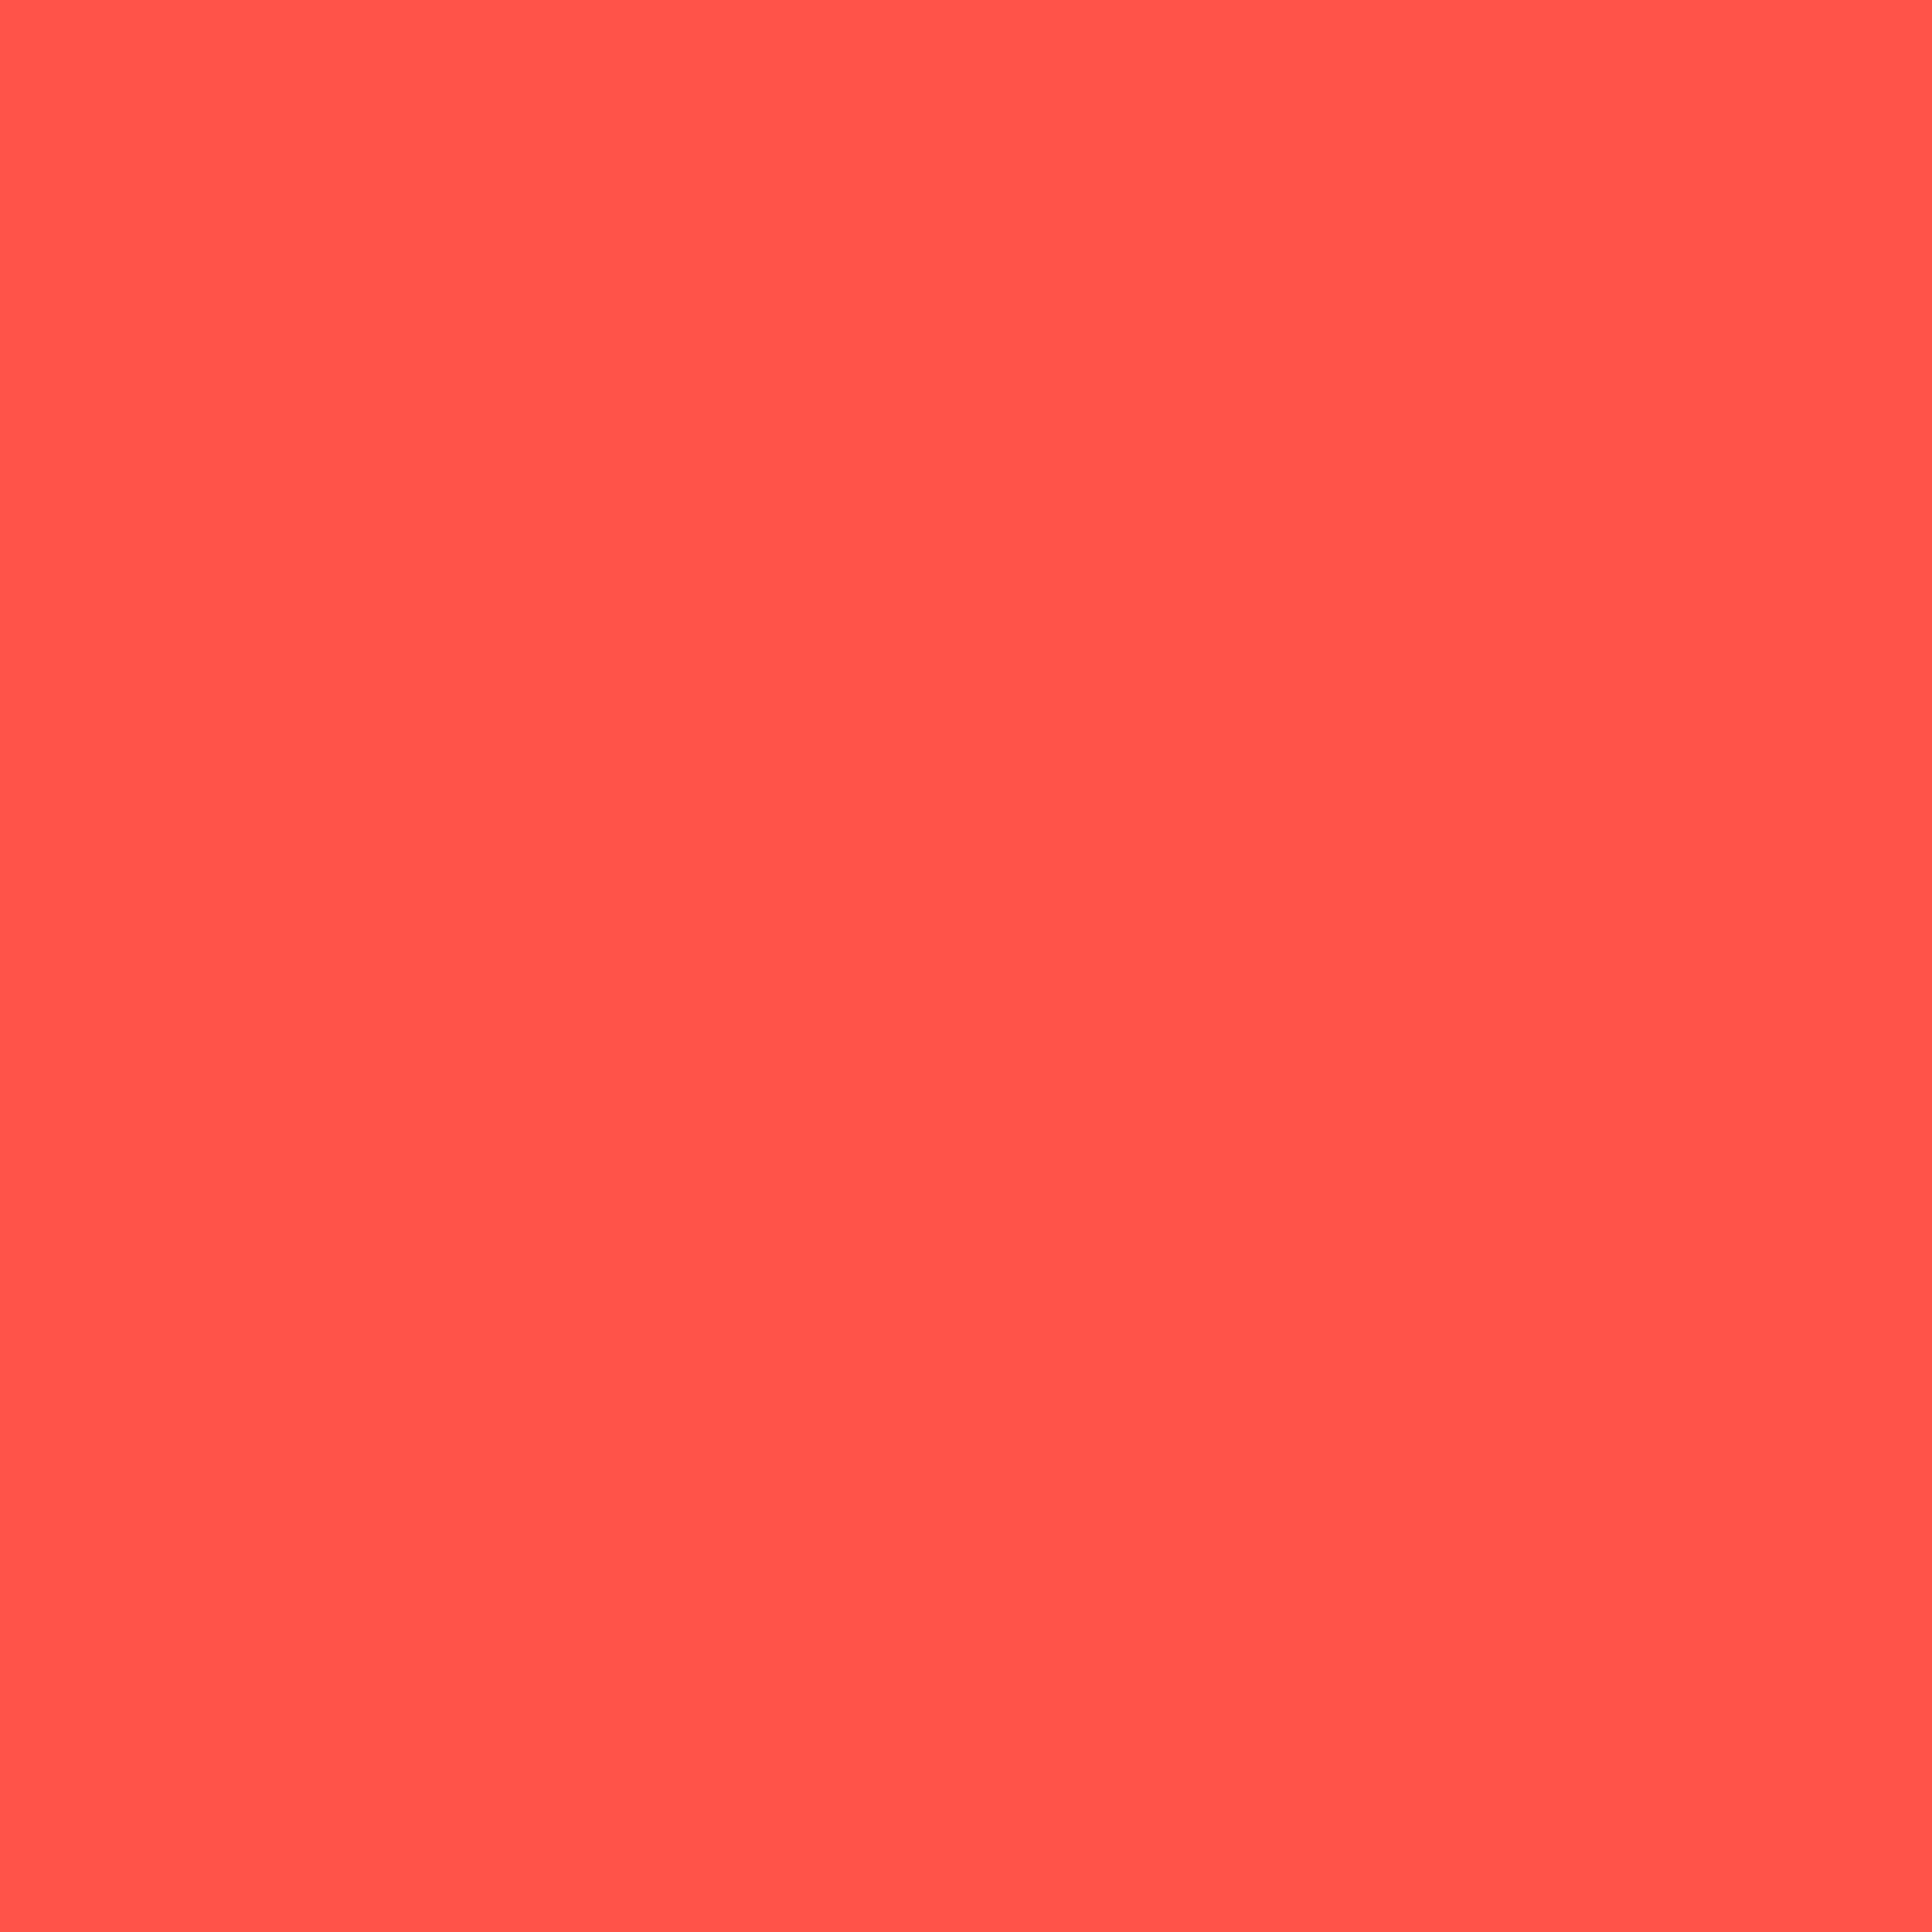 2048x2048 Red-orange Solid Color Background